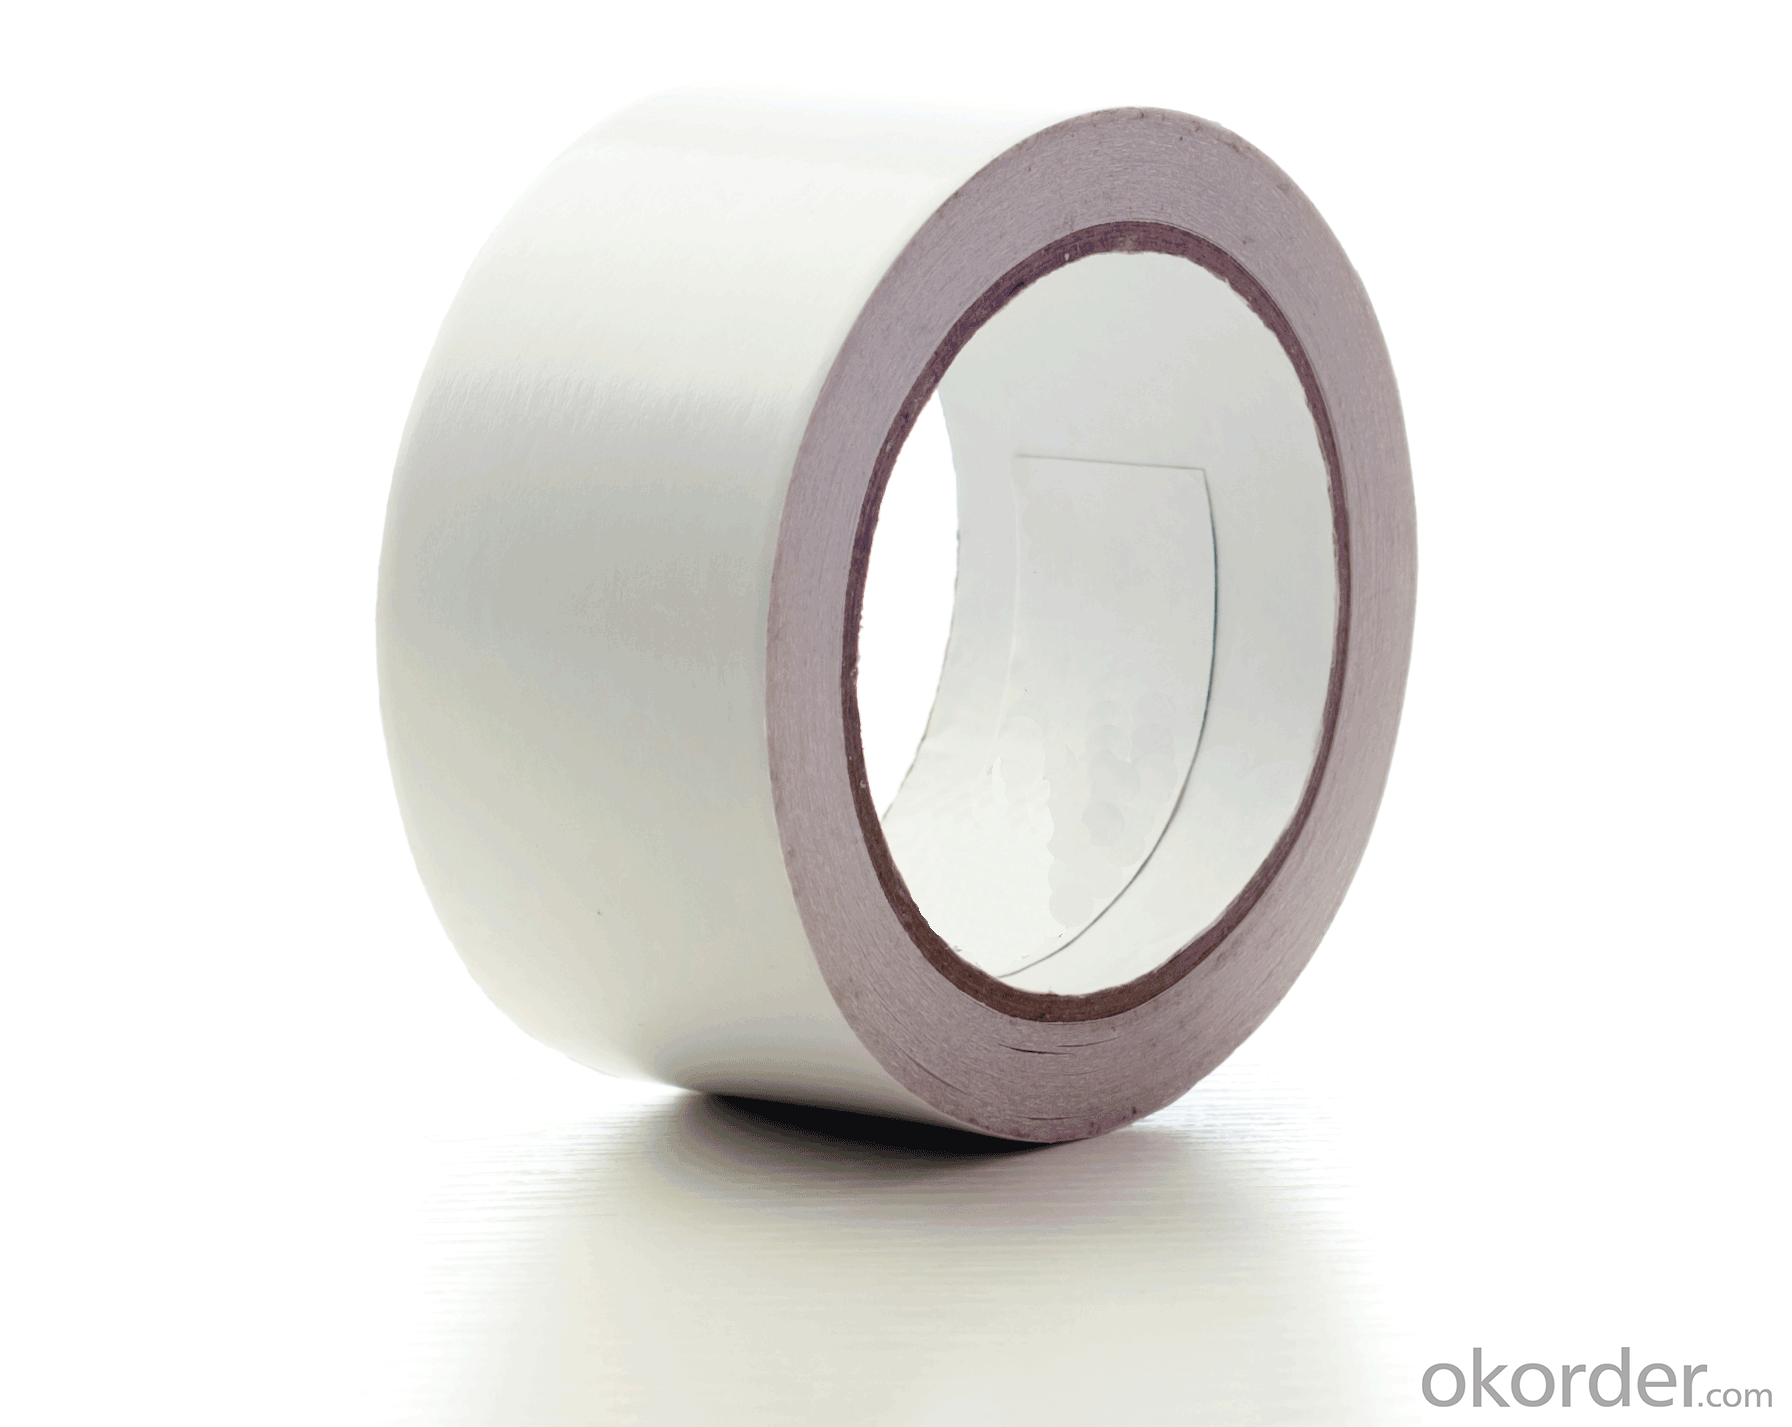 boop packaging tape silicone adhesive single sided